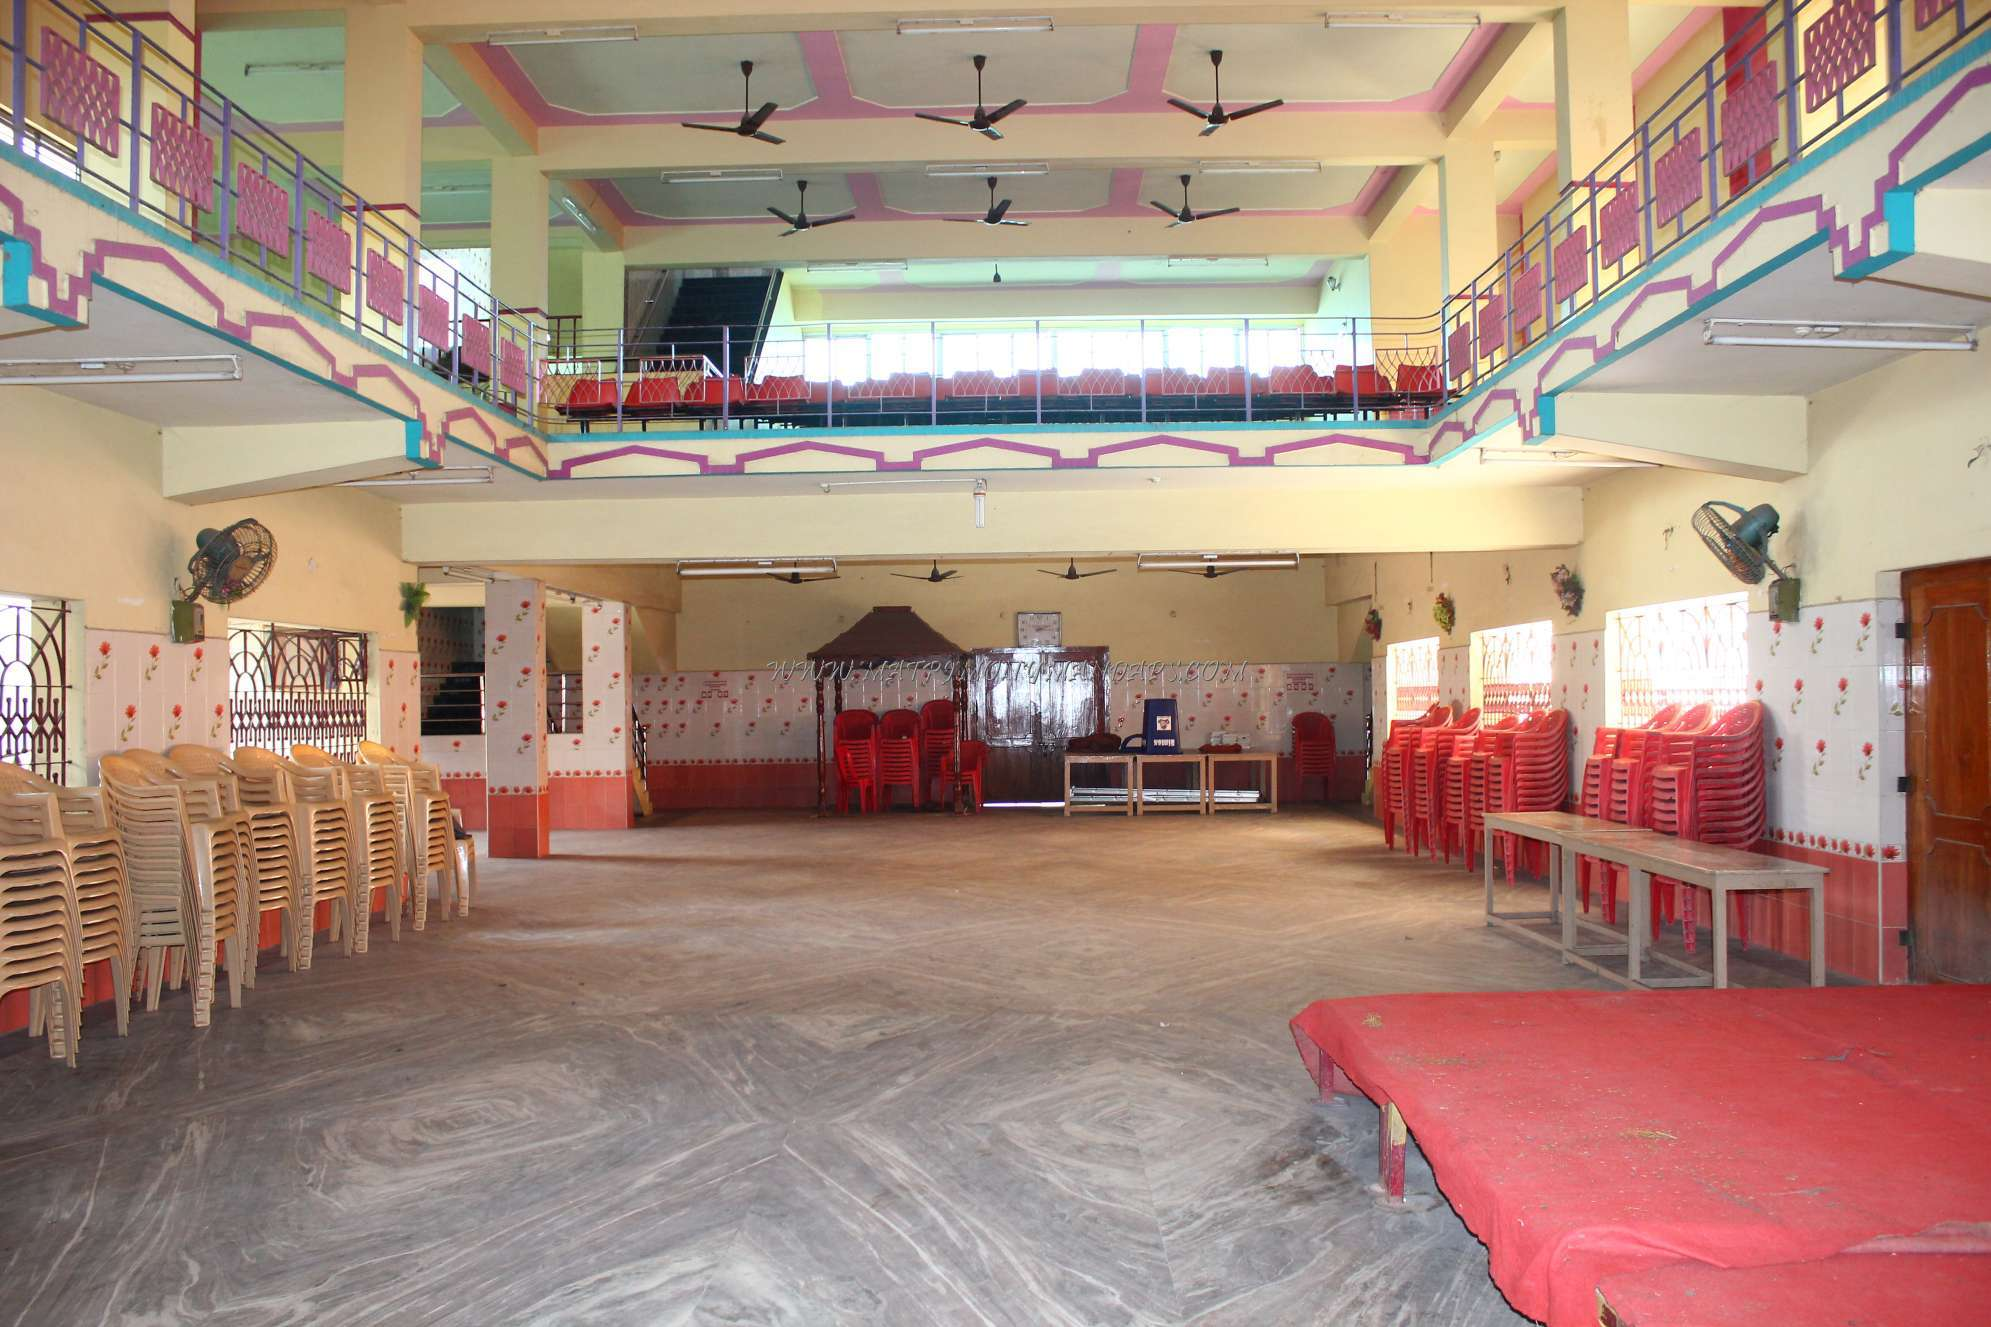 Find the availability of the Vasantham Thirumana Mandapam in Pattabiram, Chennai and avail special offers